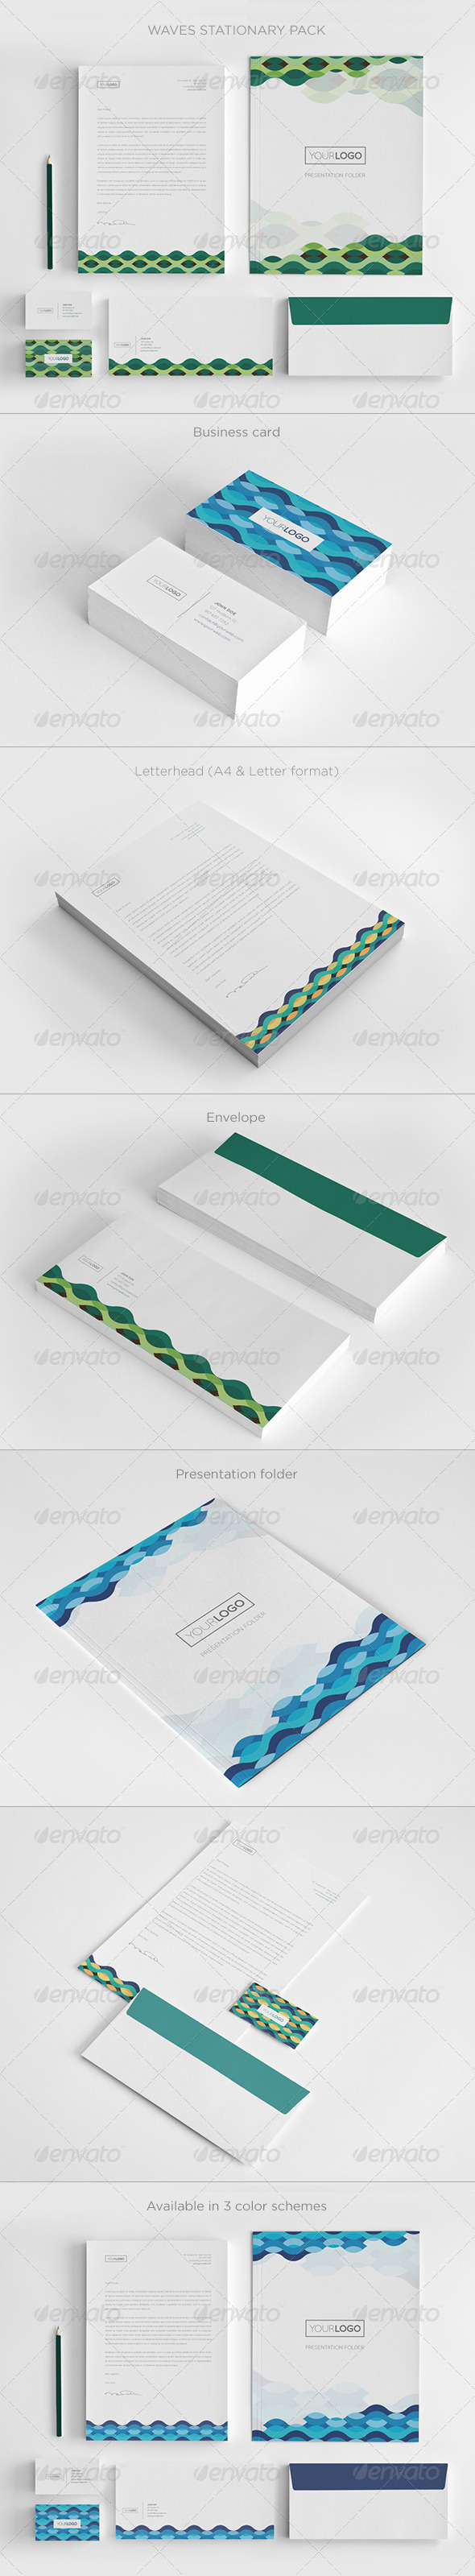 Waves Stationary Pack - Stationery Print Templates